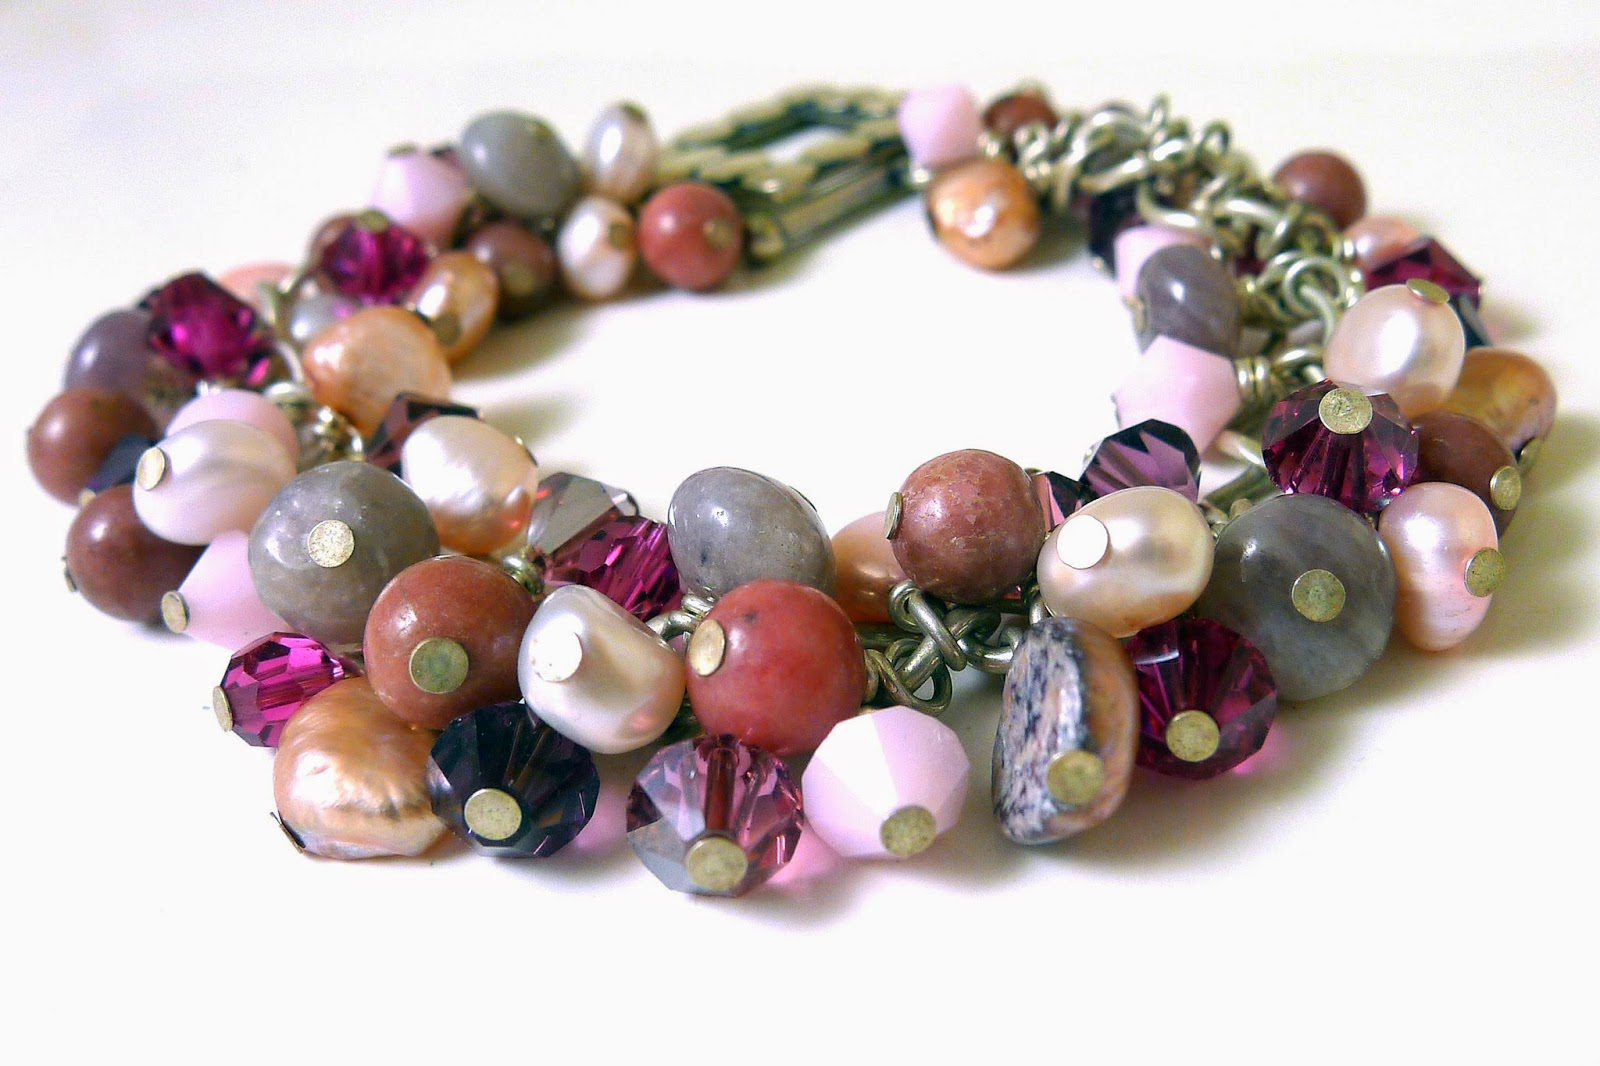 http://www.shazzabethcreations.co.nz/#!product/prd1/2442531711/pink-gemstone-charm-bracelet